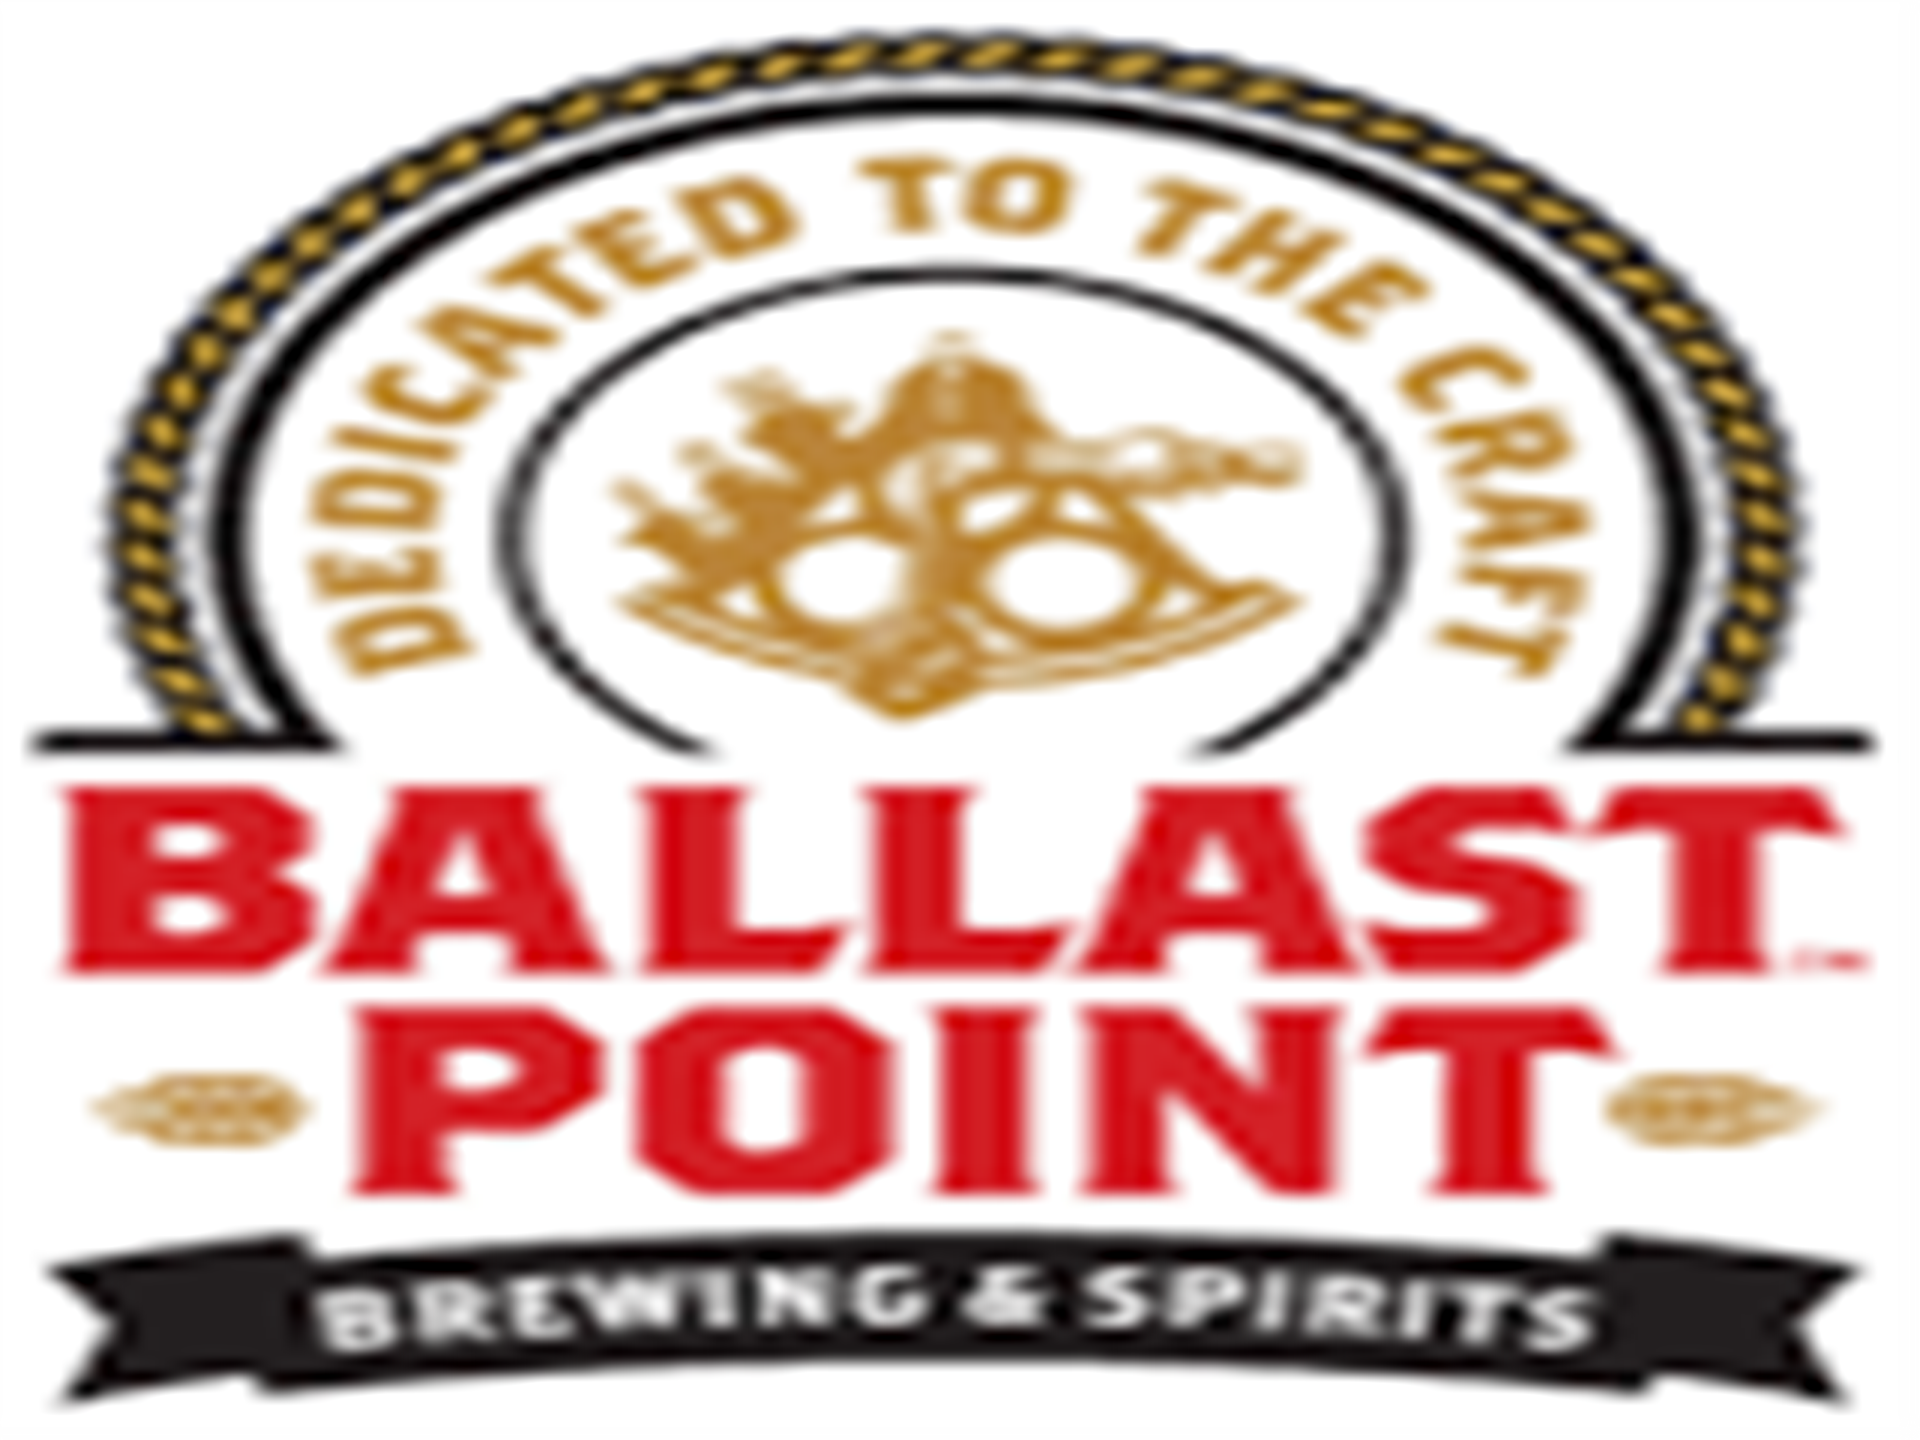 Ballast Point Brewing and spirits. Dedicated to the craft.